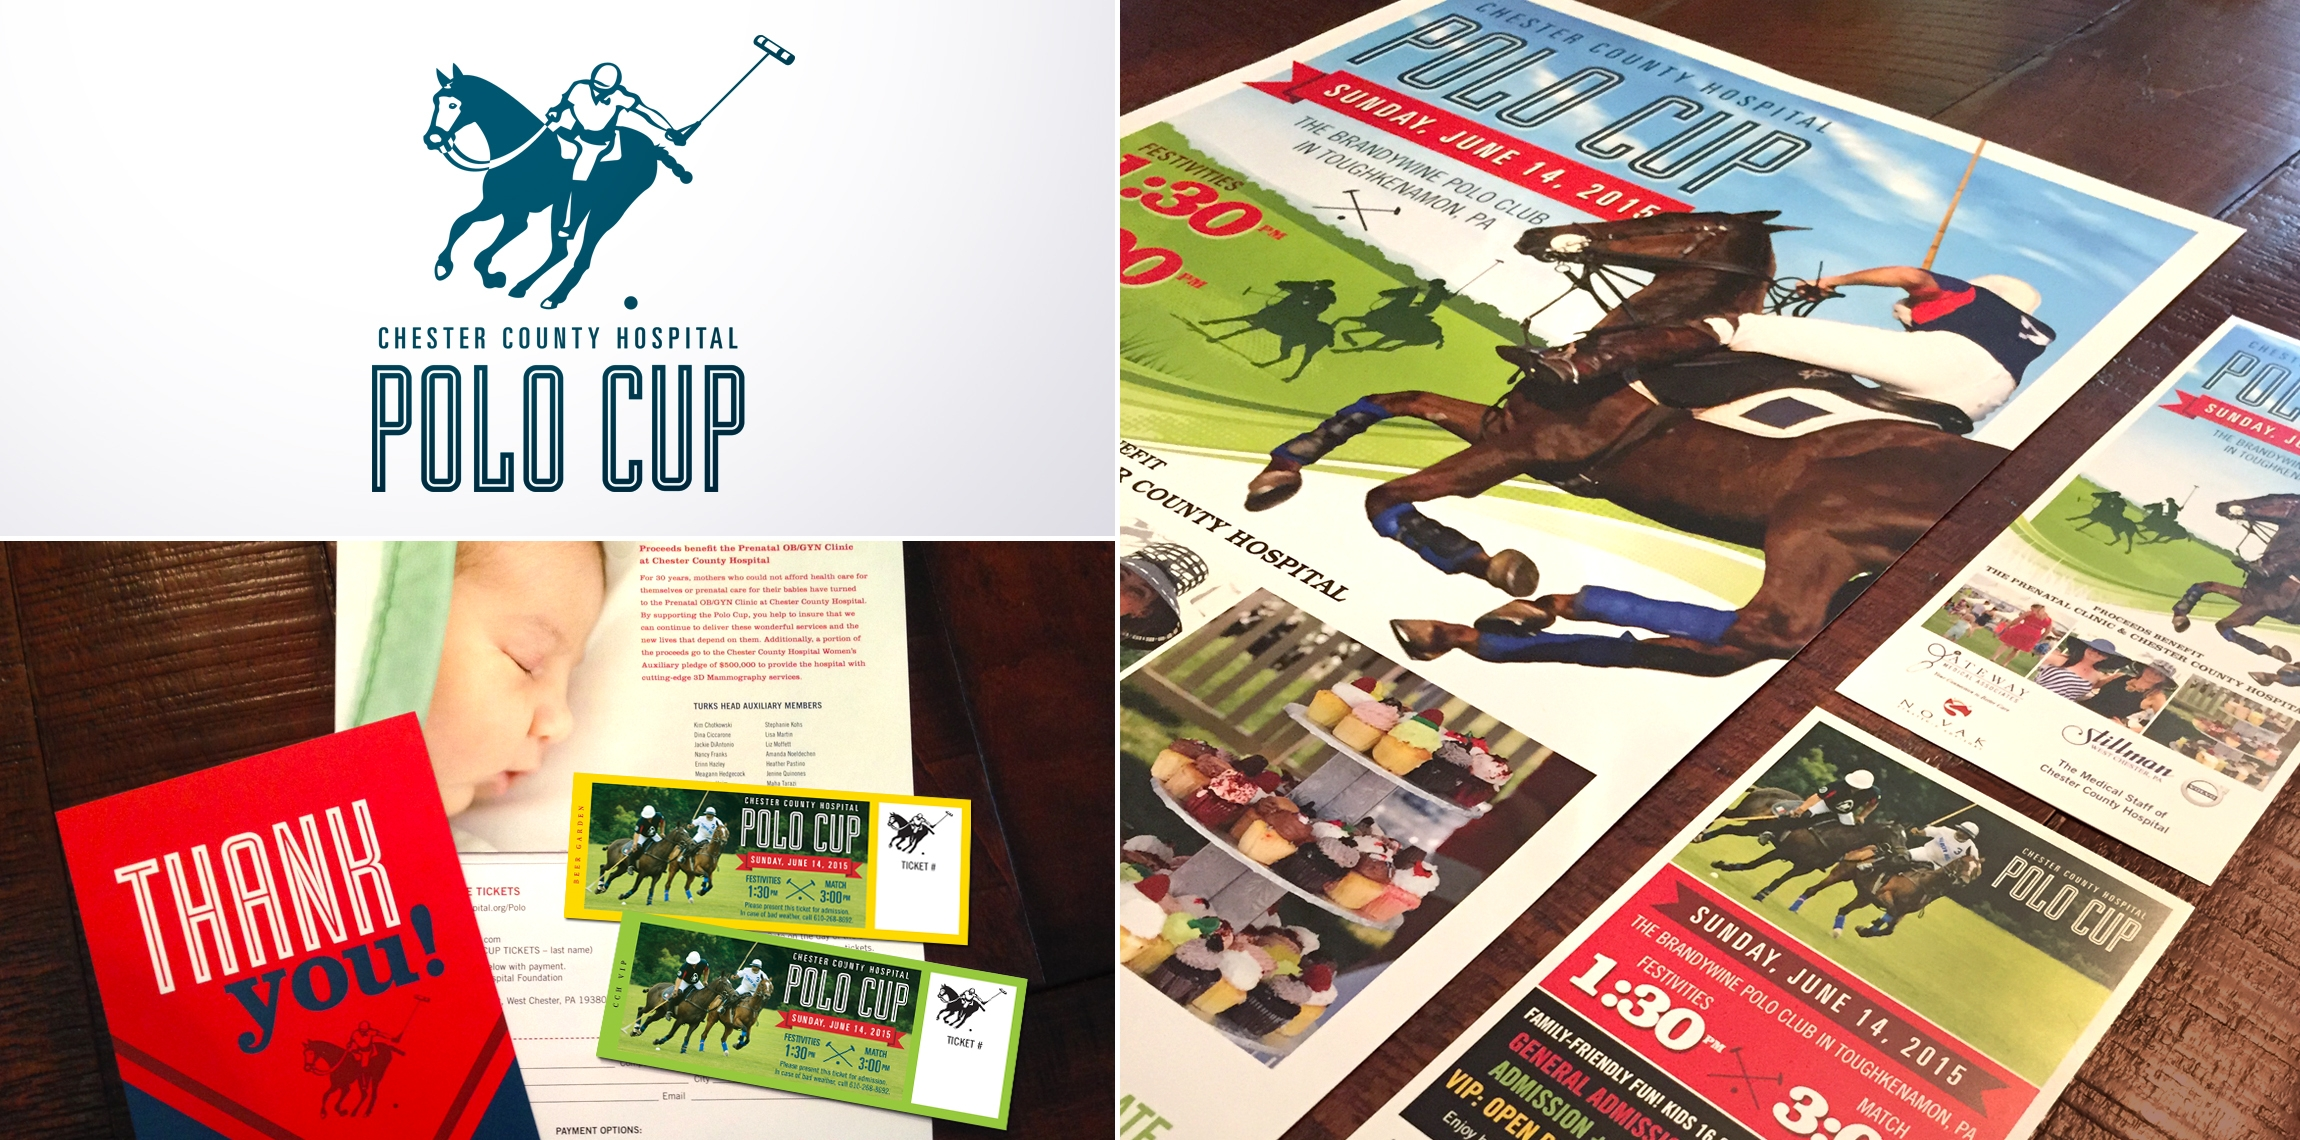 Chester County Hospital Polo Cup: Event Promotion Package